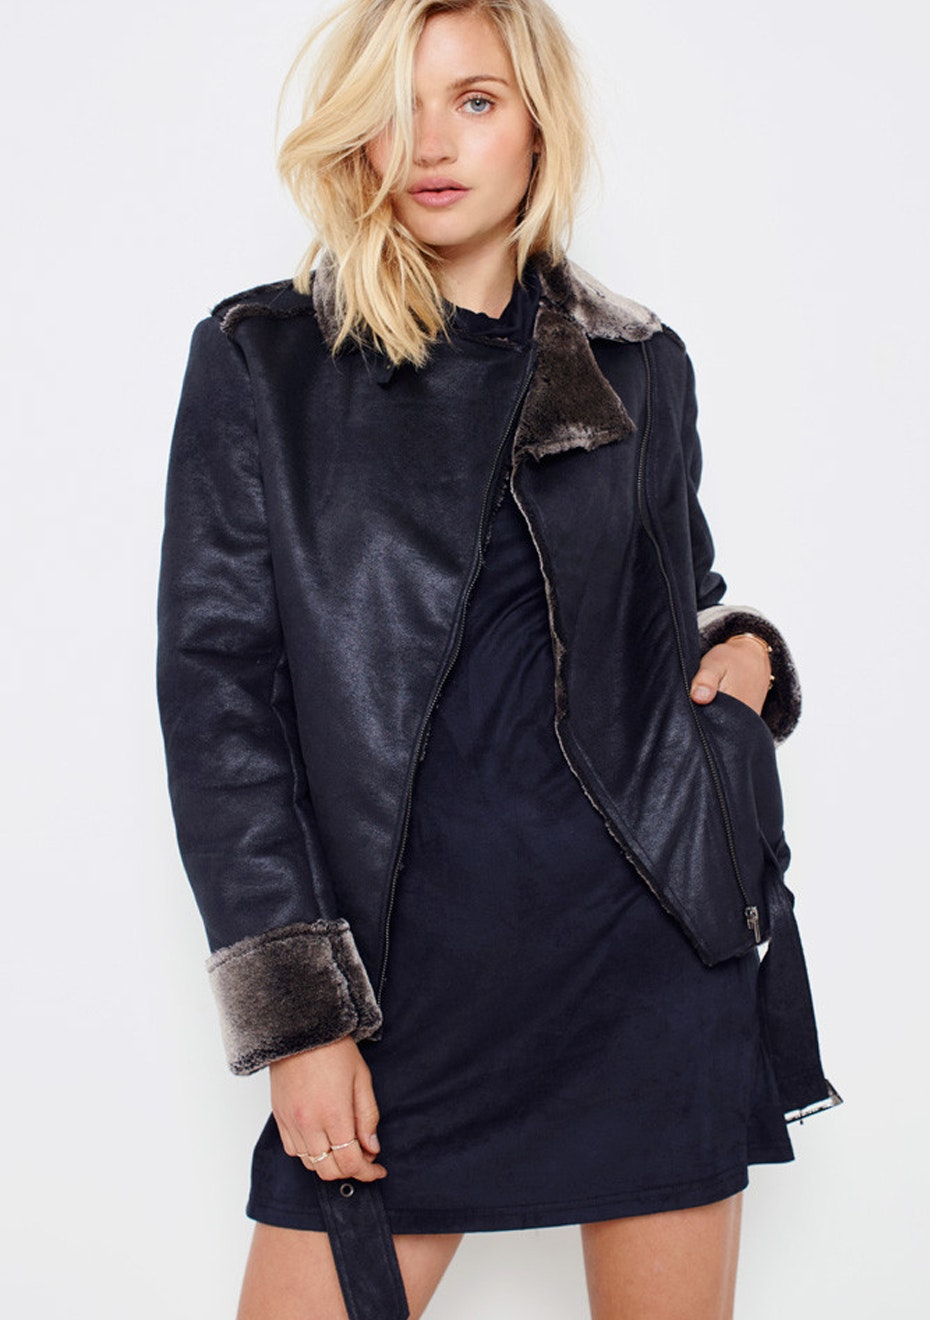 MINKPINK - Midnight Sky Aviator Jacket - Black/Charcoal